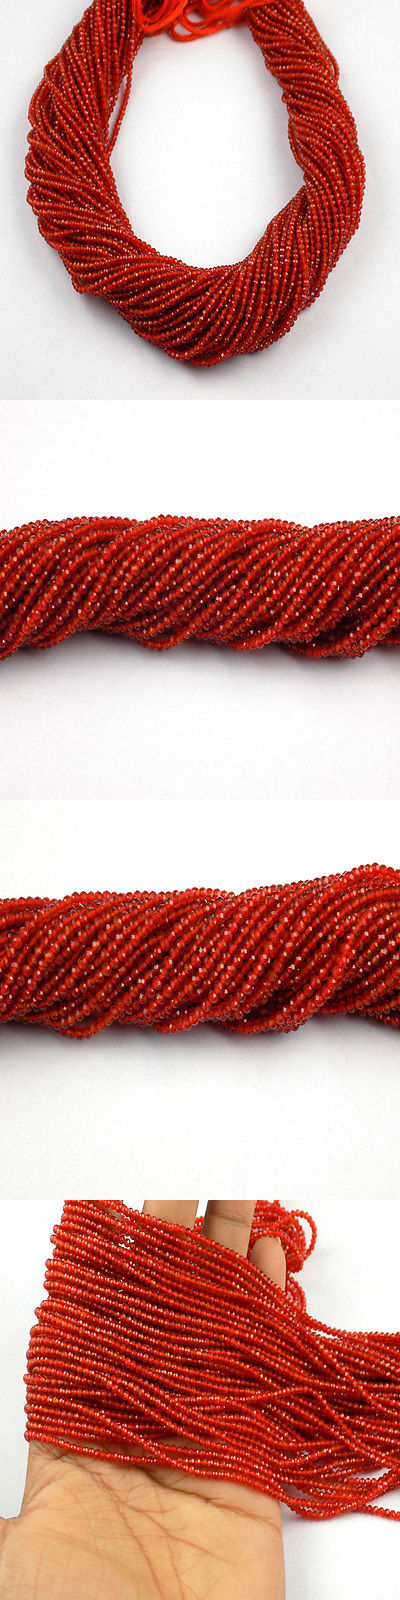 Carnelian 110790: 5 Strand Carnelian Rondelle Approx 2.20Mm Micro Faceted Gemstone Beads 13 Long -> BUY IT NOW ONLY: $34.91 on eBay!